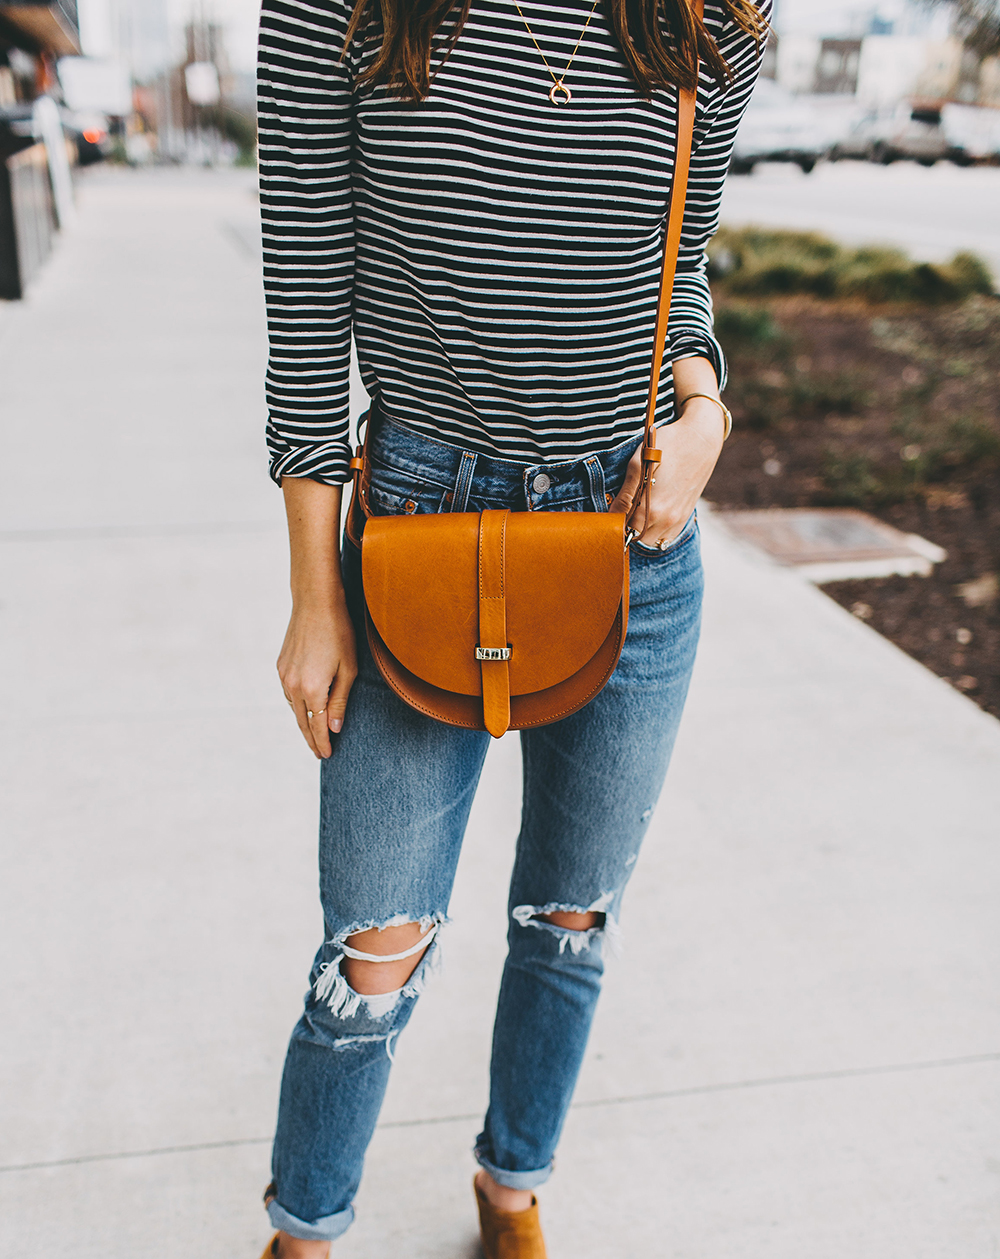 livvyland-blog-olivia-watson-austin-texas-fashion-blogger-j-crew-striped-turtleneck-outfit-idea-inspiration-10